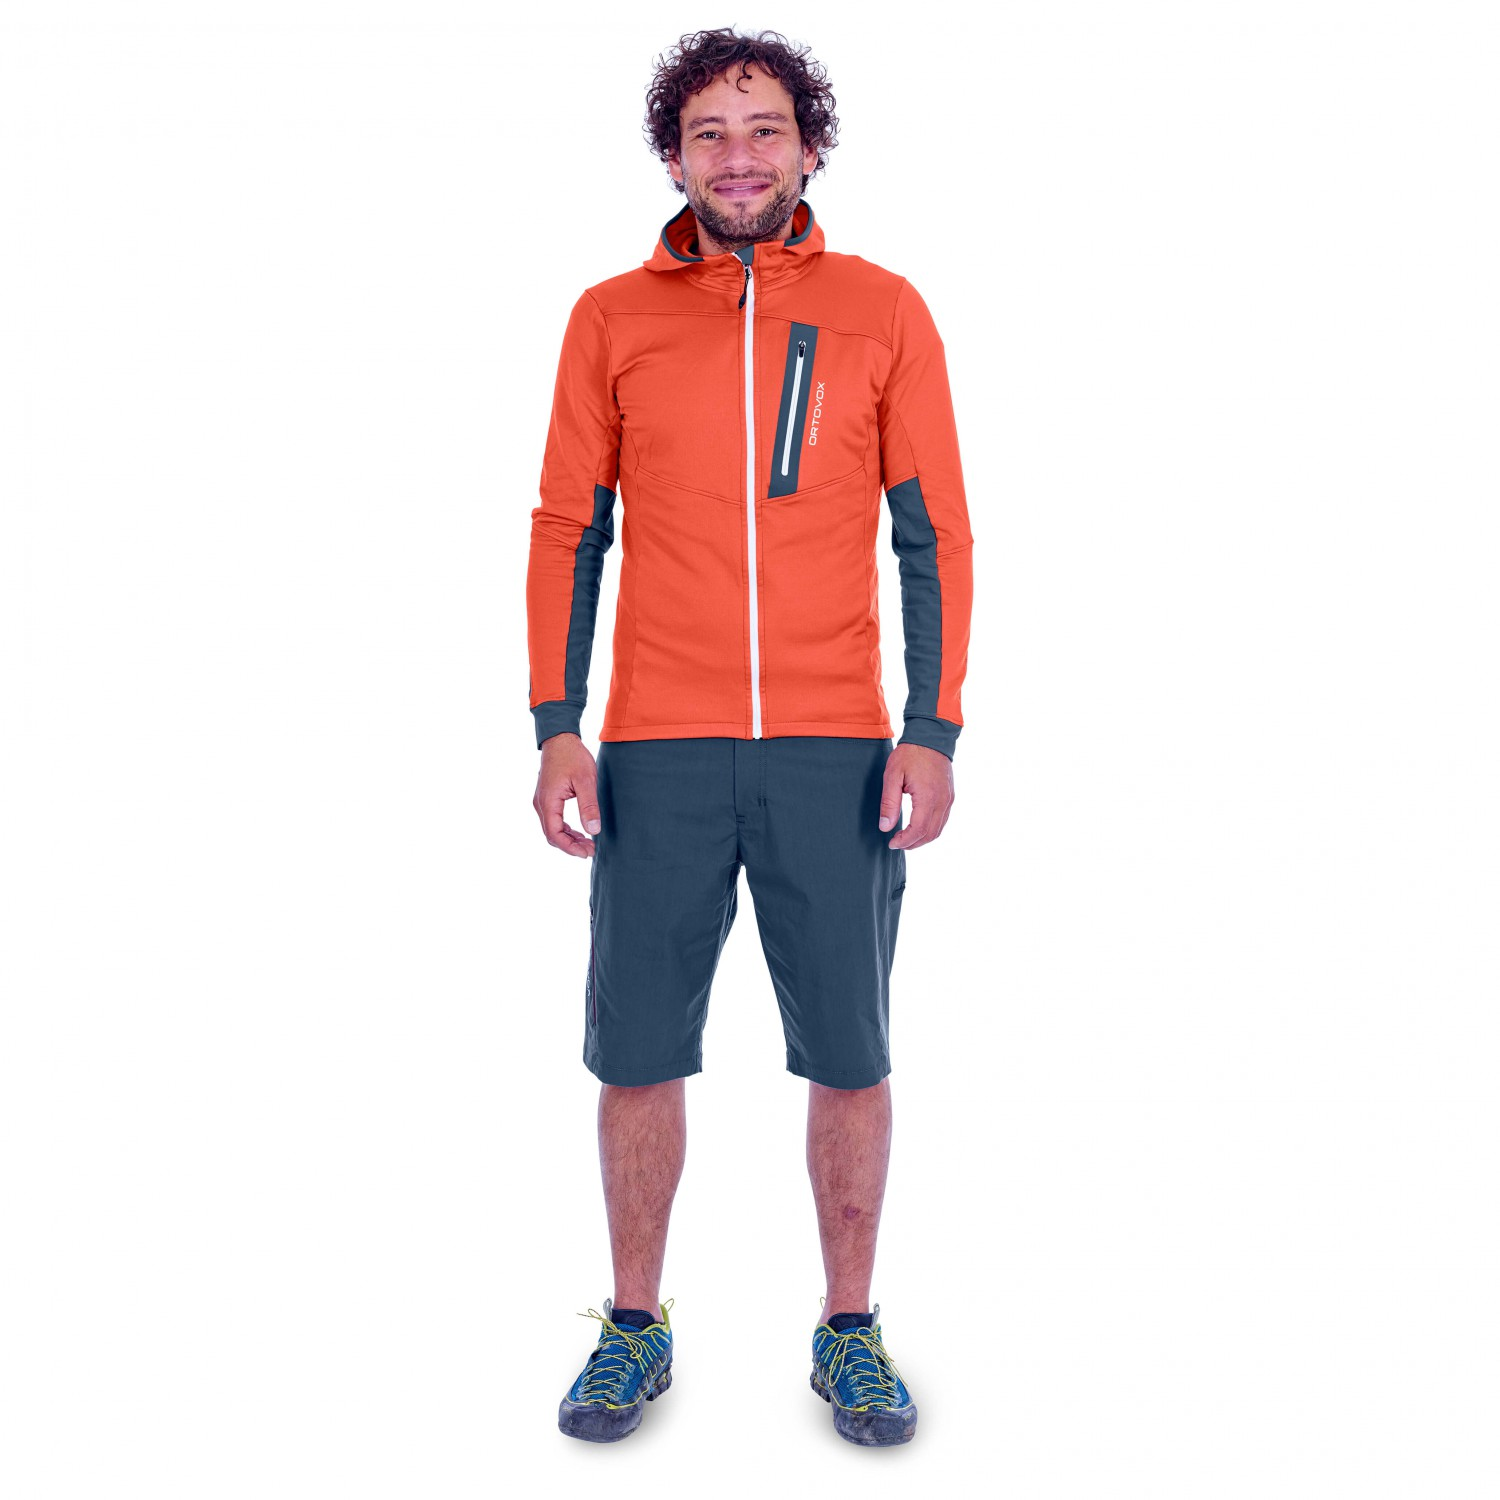 Ortovox Fleece Light Tec Hoody Fleece jacket Crazy Orange | XL